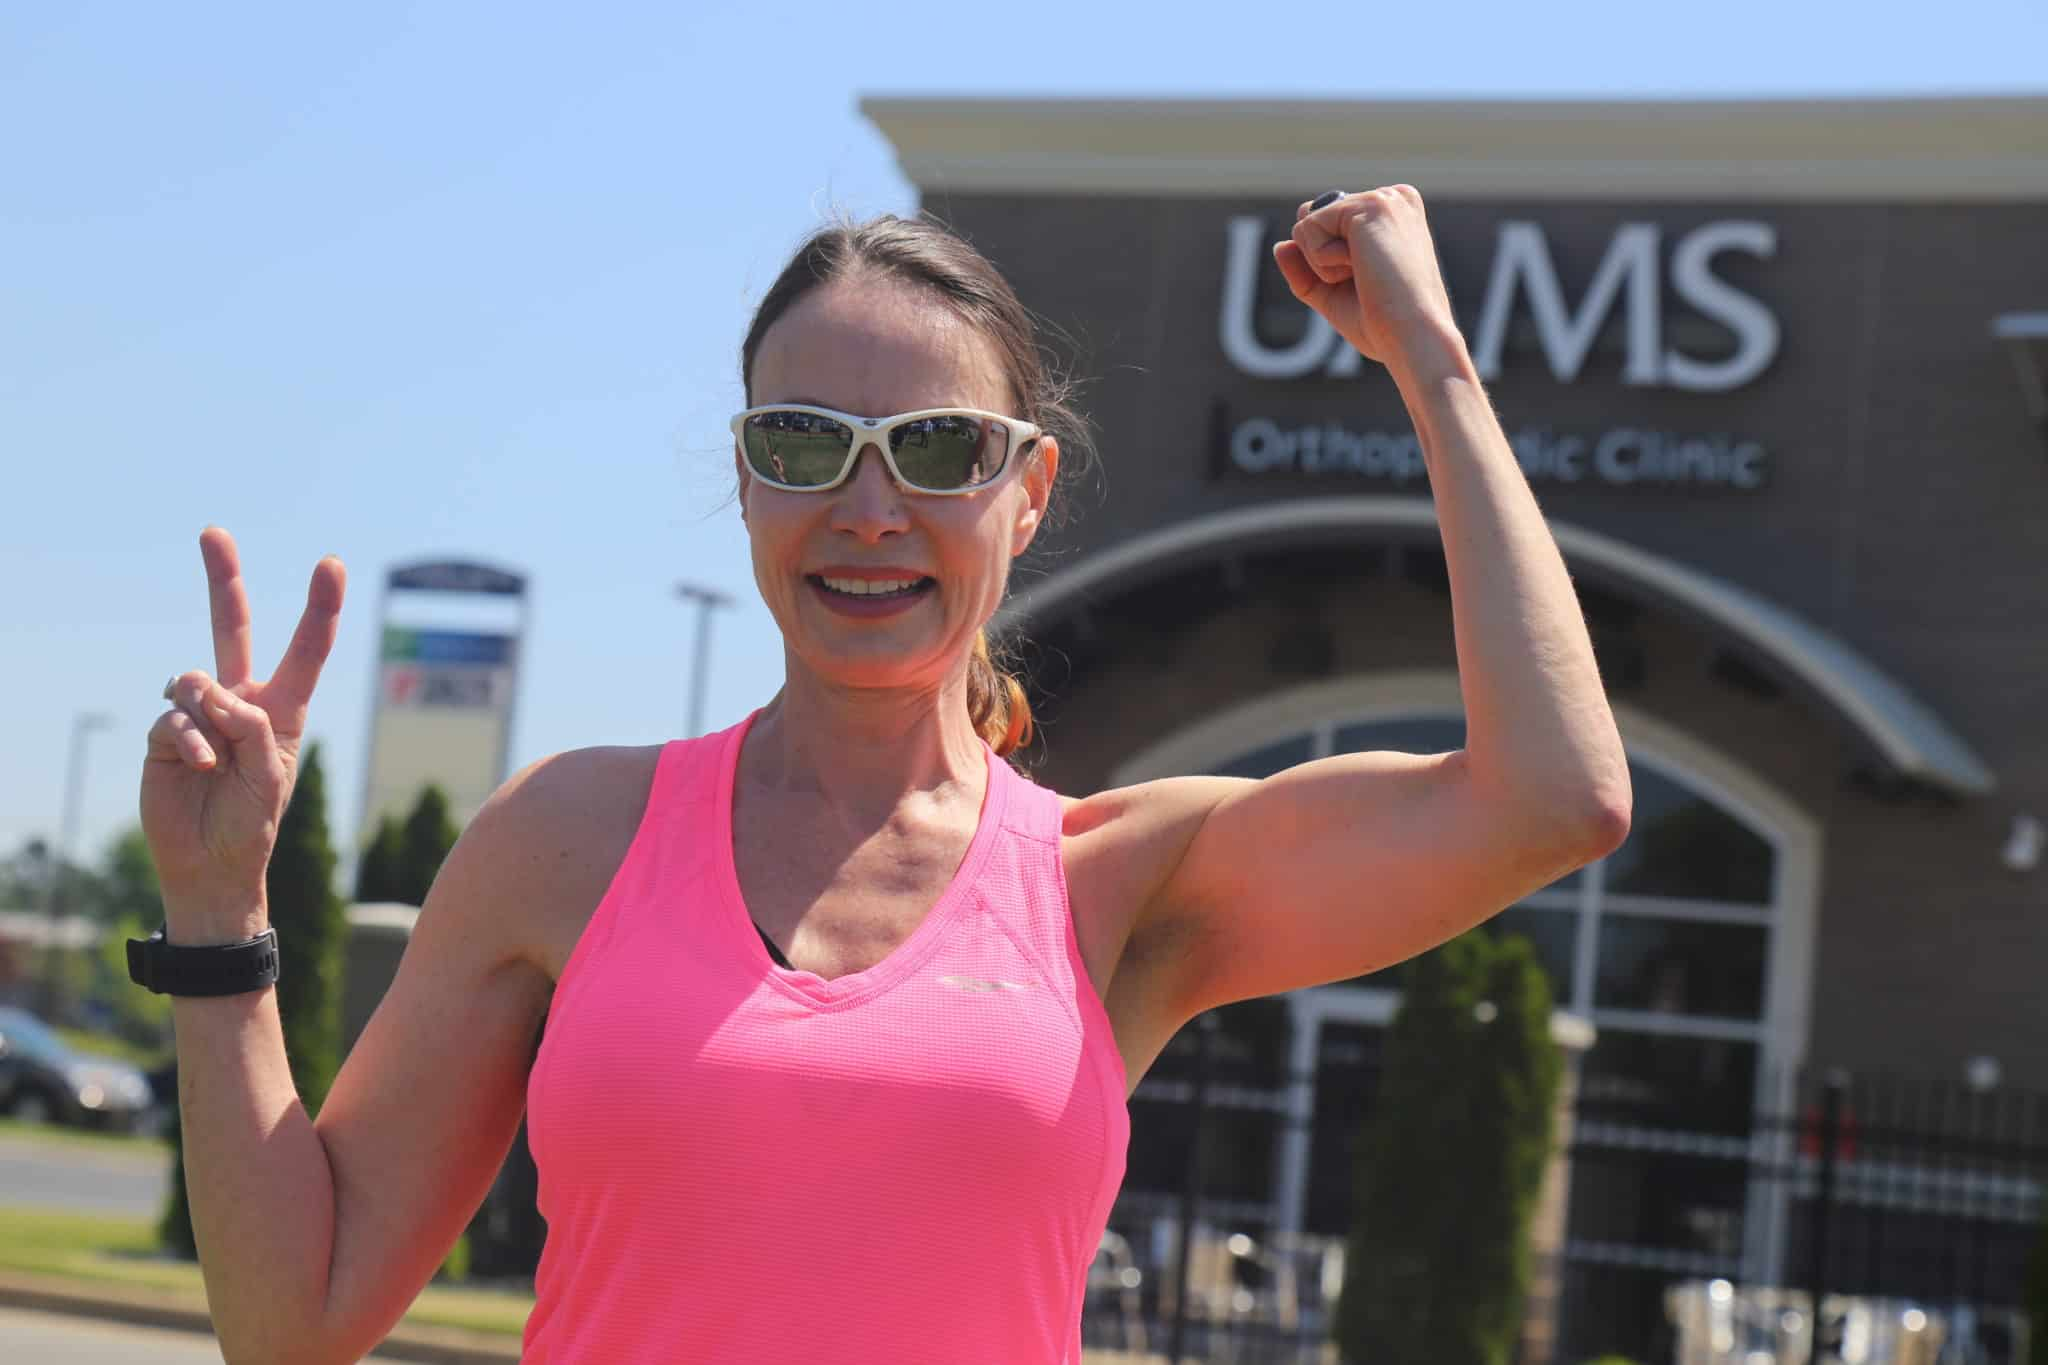 Mary Anne Hanson flexing outside UAMS ortho clinic